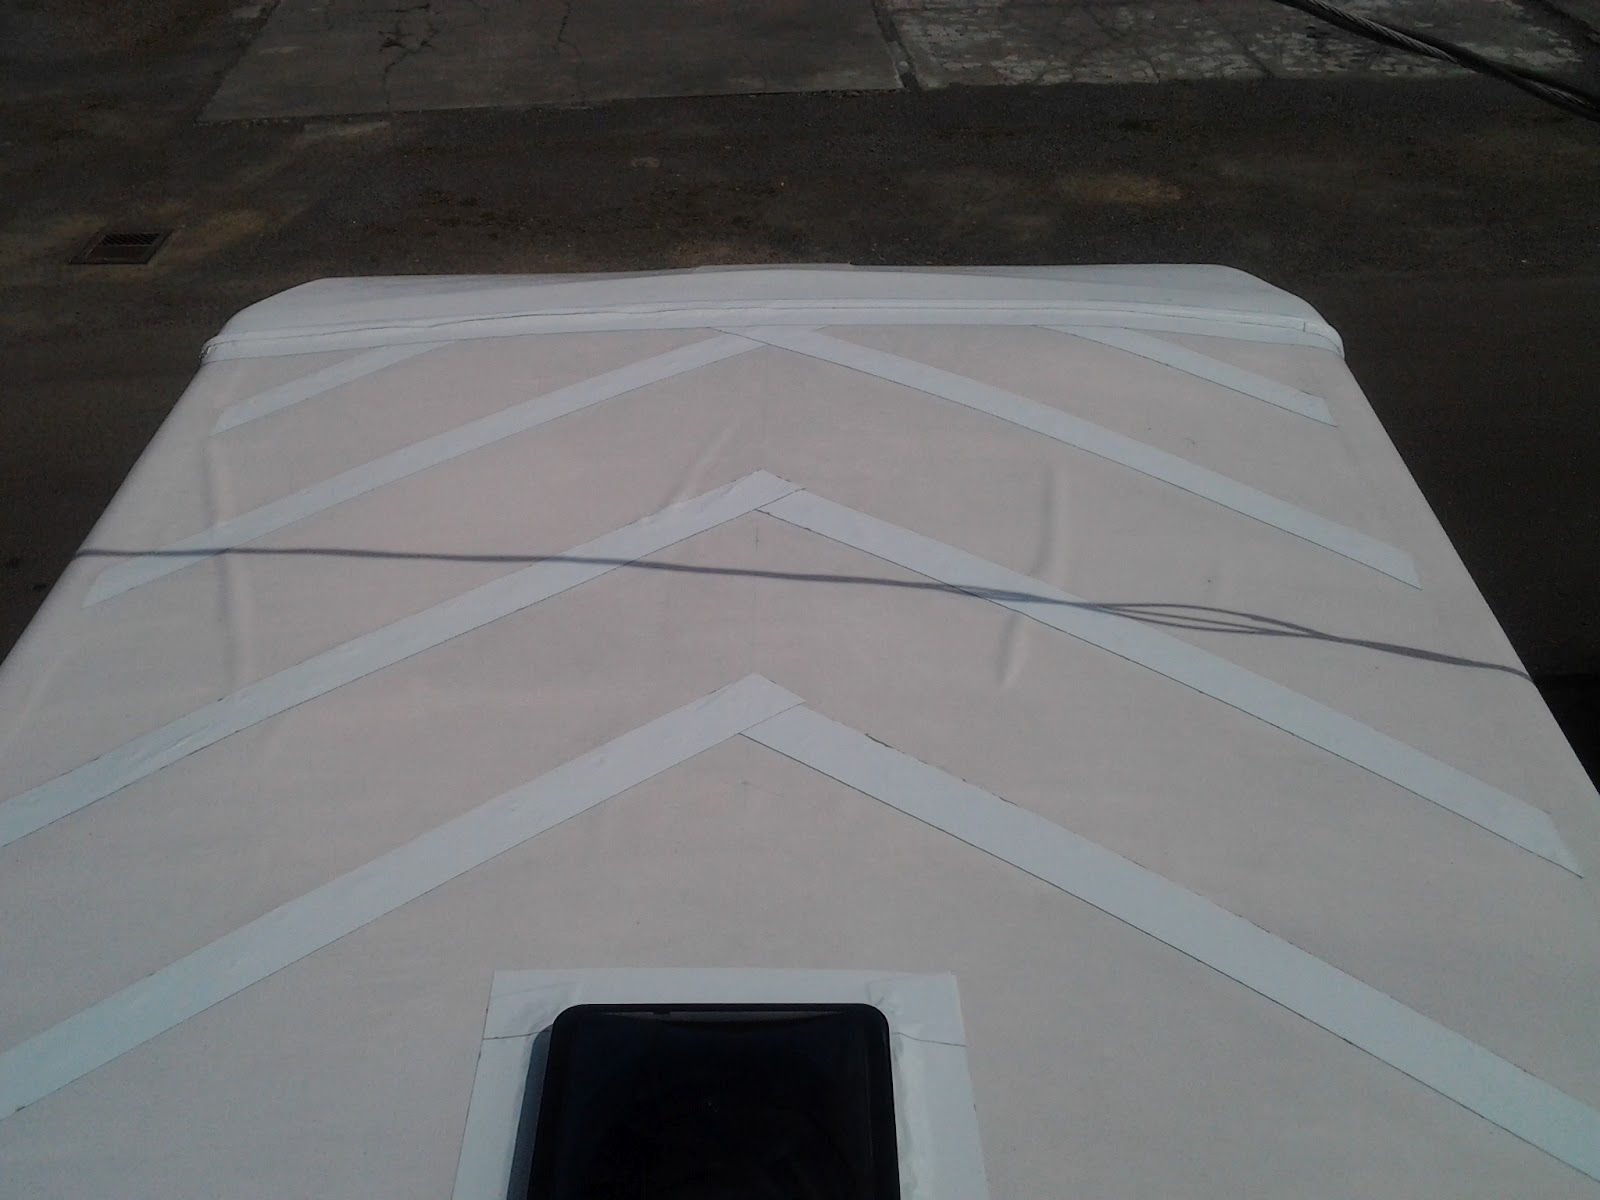 EternaBond Roof Seal, Roofing Nails And A Design To Battle The Dreaded  Rubber Roof BUBBLE